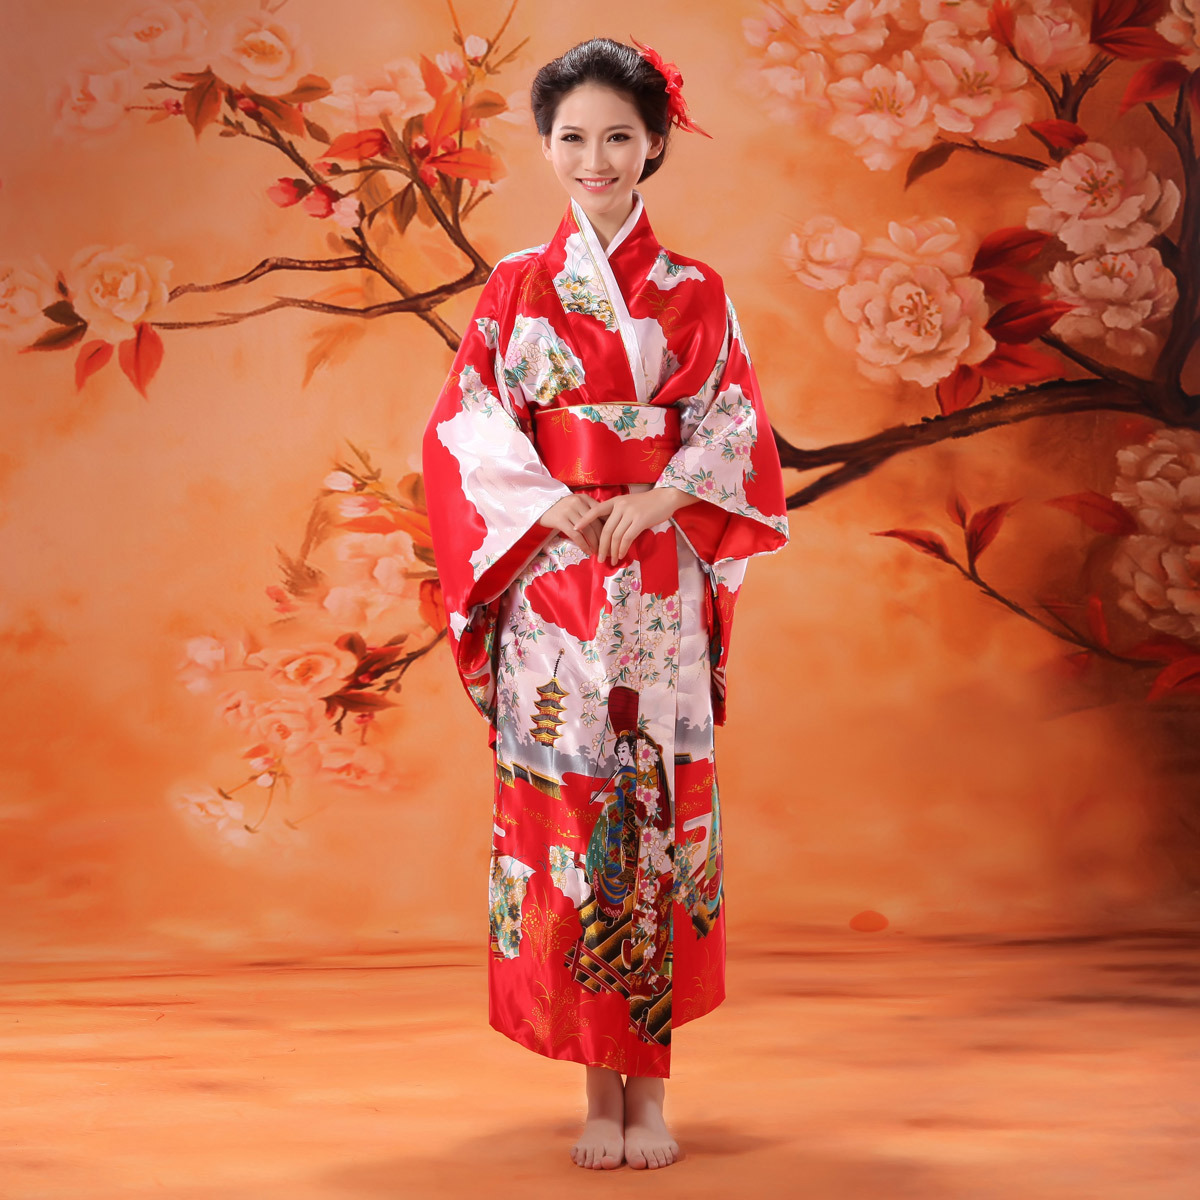 Kimono Dress Dressed Up Girl